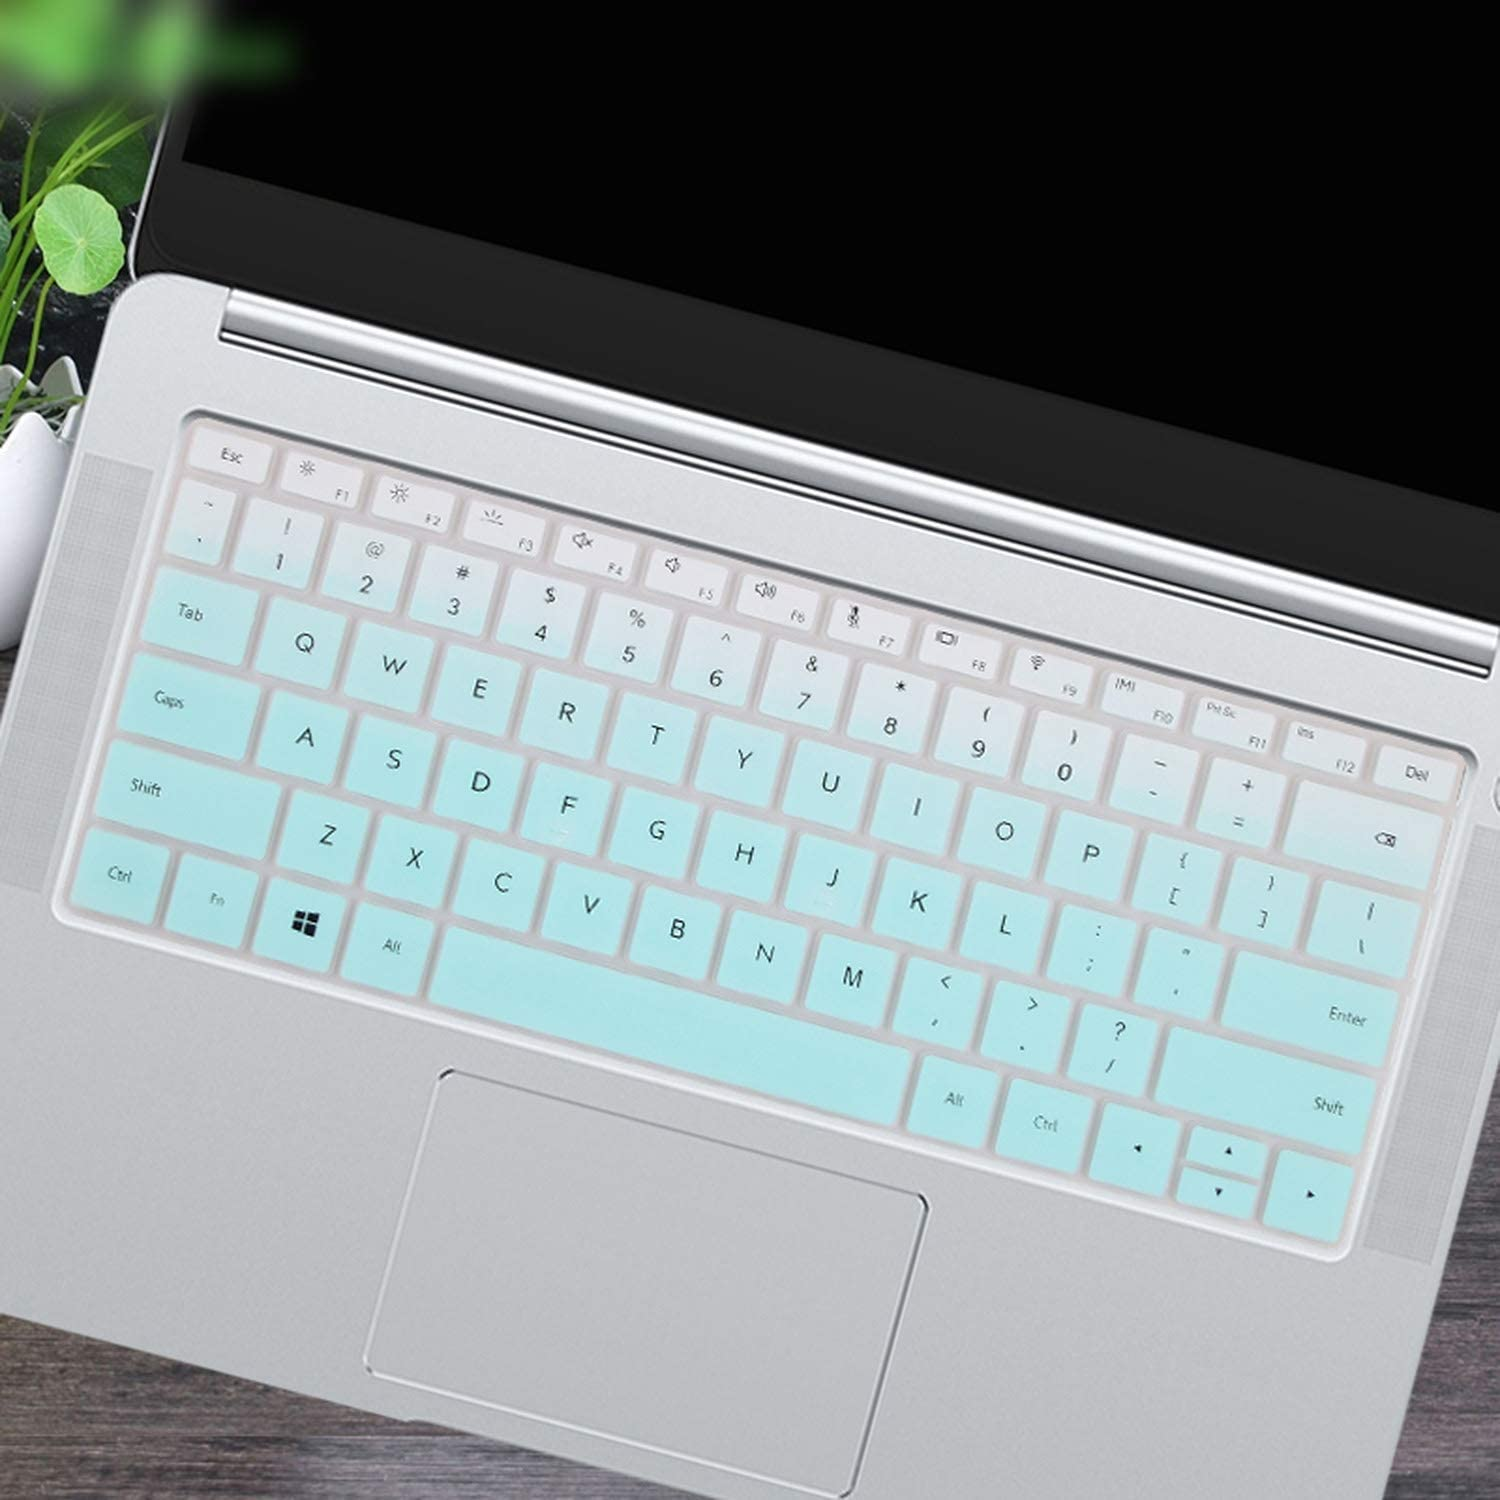 for Huawei Matebook D 14 Inch Notebook D14 14.0 Silicone Laptop Keyboard Cover Protector Skin-in Keyboard Covers from Computer /& Office,Fadepink AMD